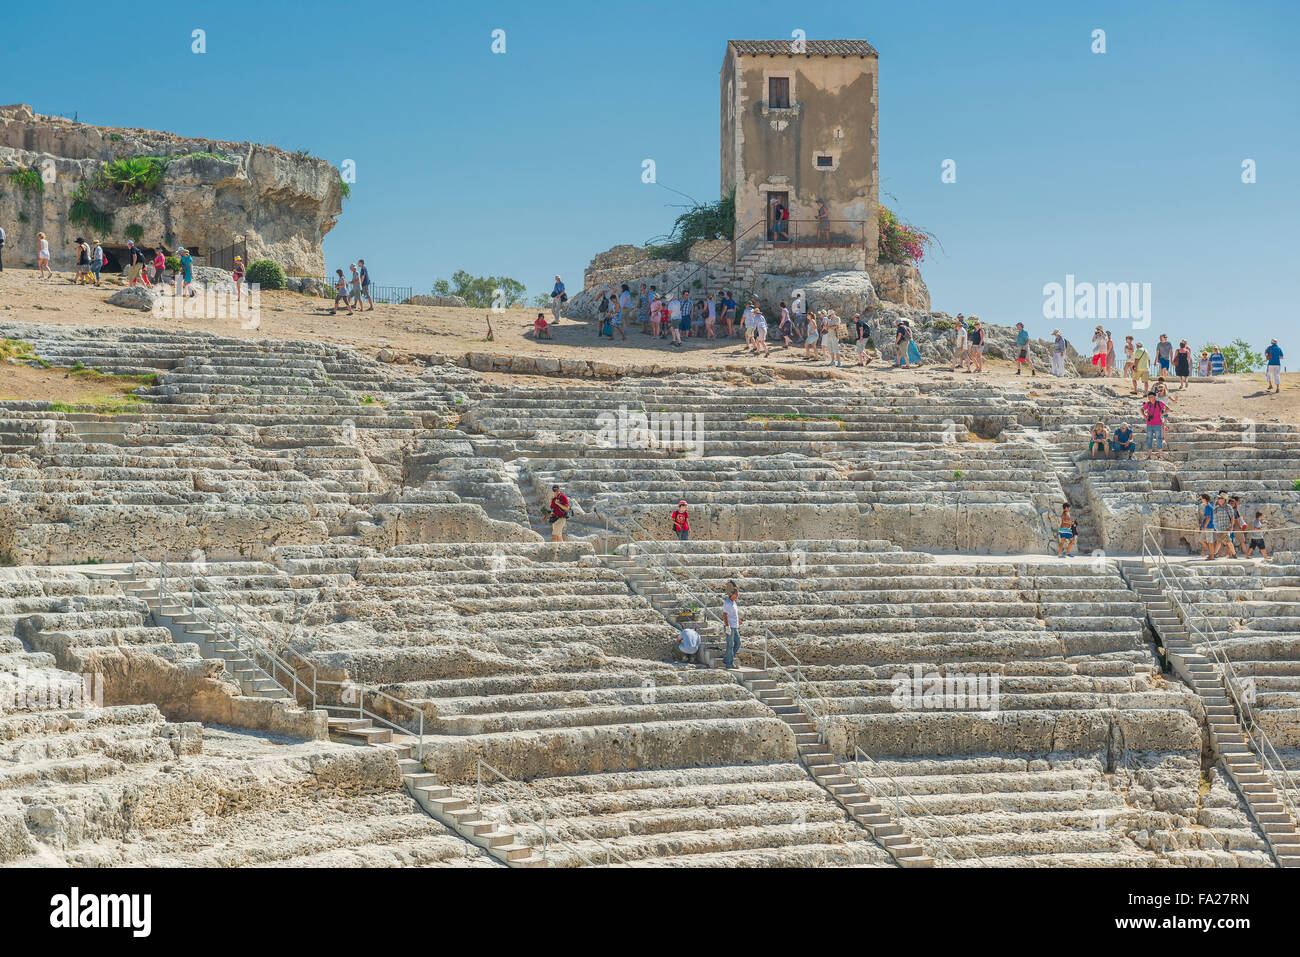 Sicily Greek theatre, view of the auditorium of the ancient Greek theater in the Archaeological Park at Syracuse - Stock Image